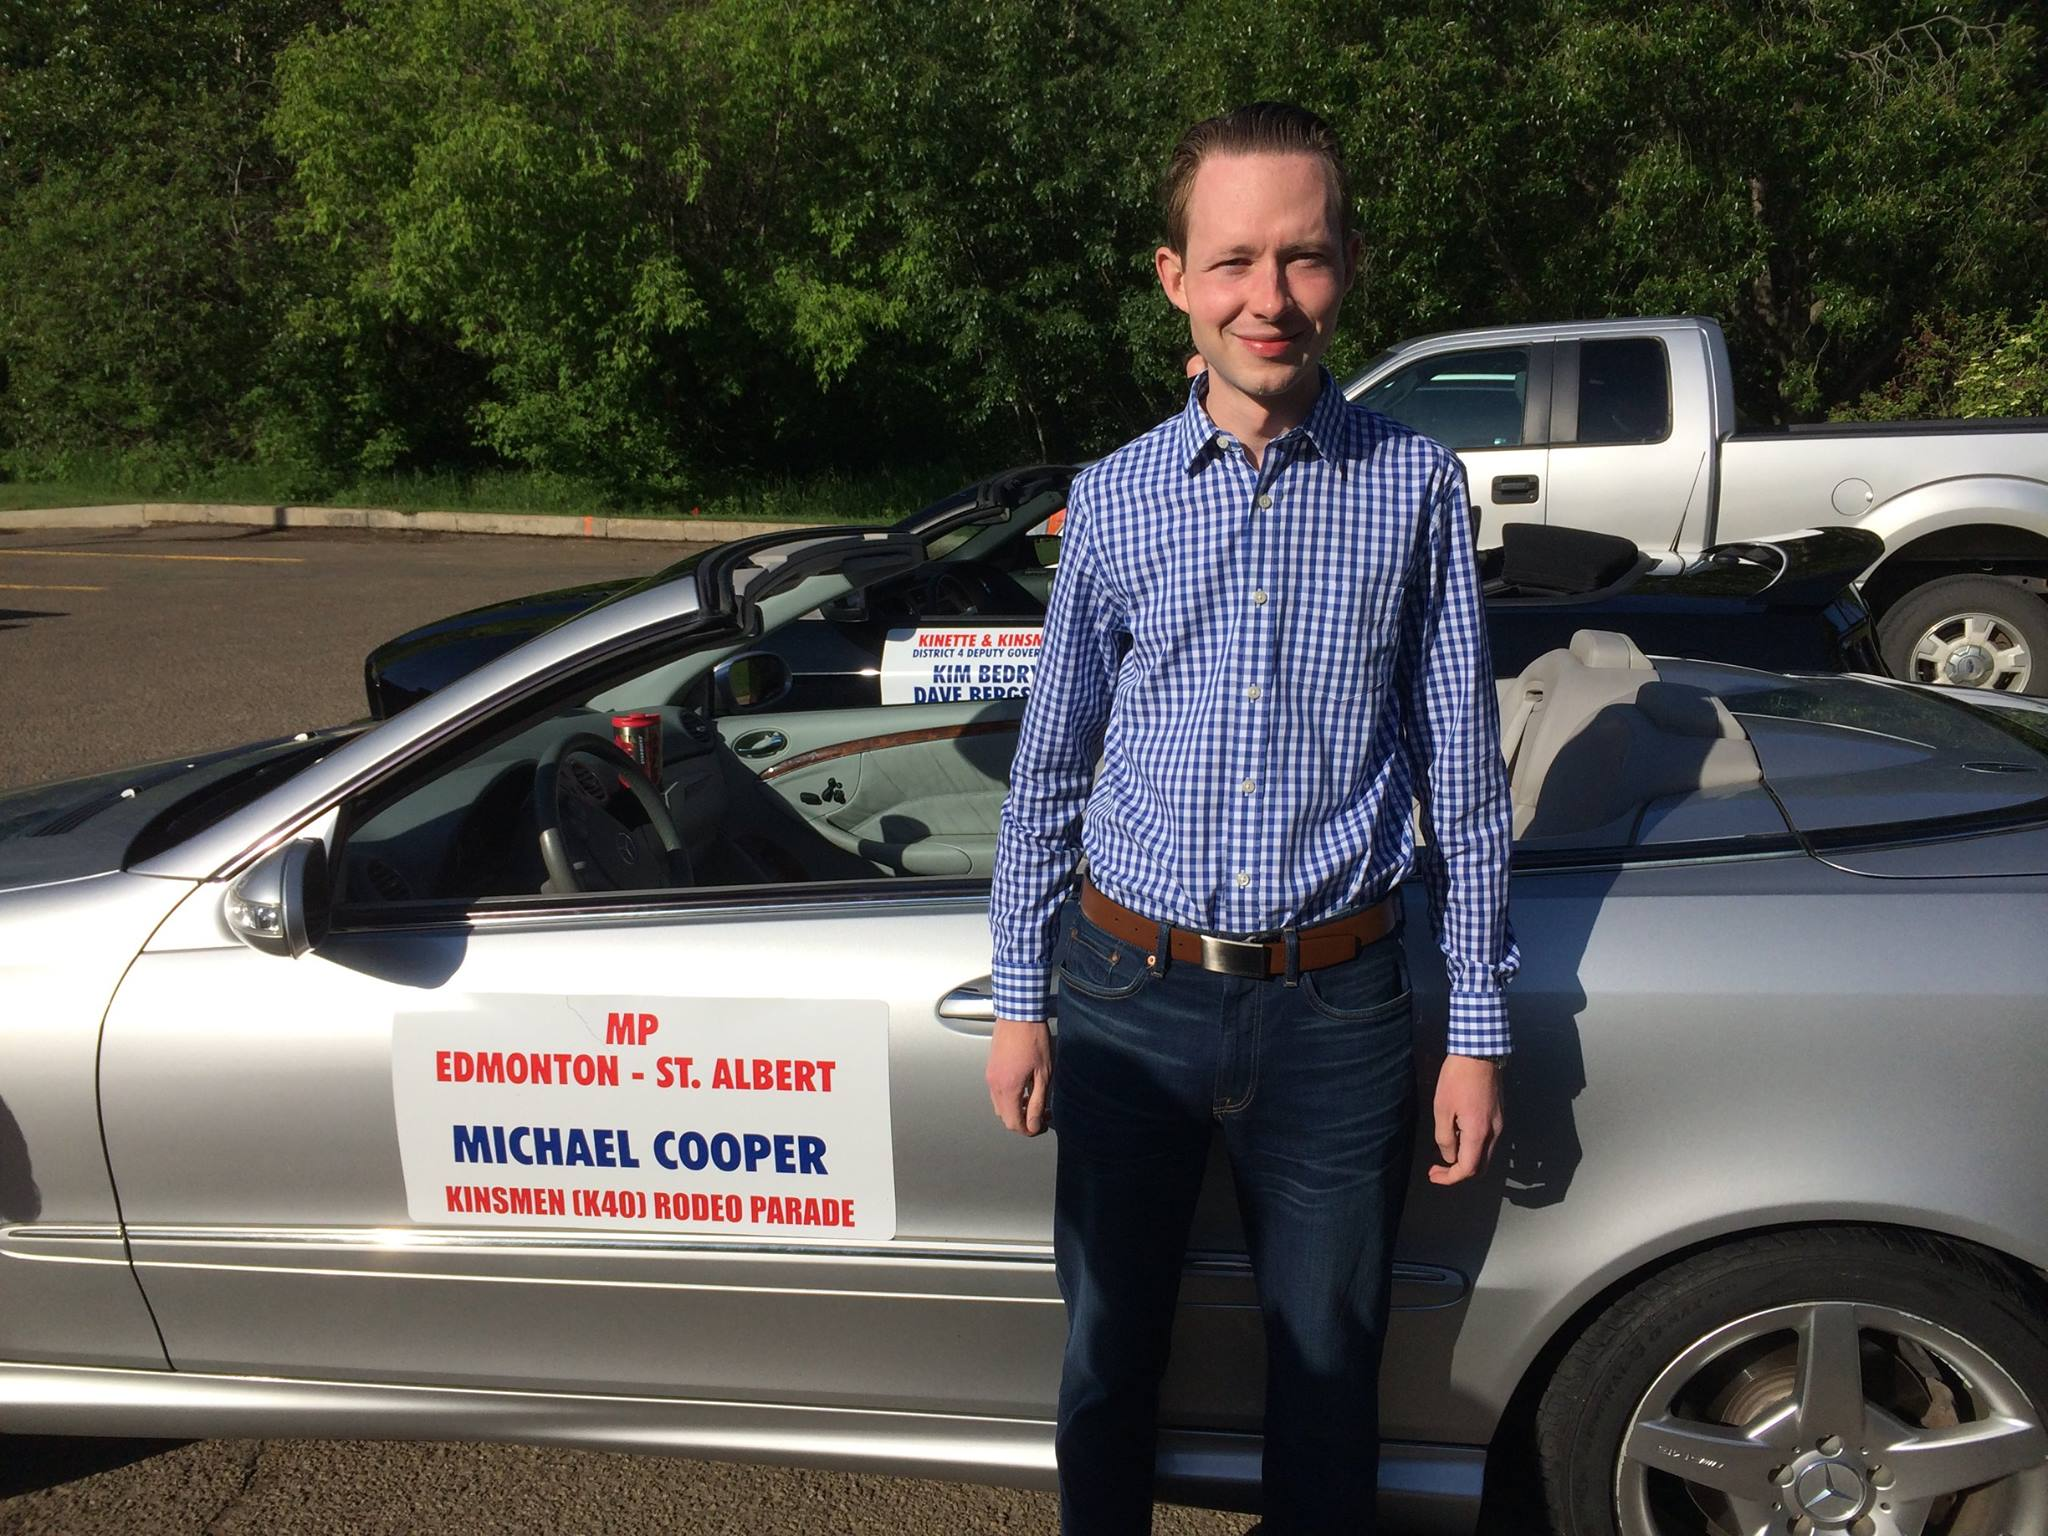 Pleased to participate in the Rainmaker Rodeo parade. It was nice to see so many people out for the parade. Thanks to all the volunteers for making the 51st Rainmaker another success.